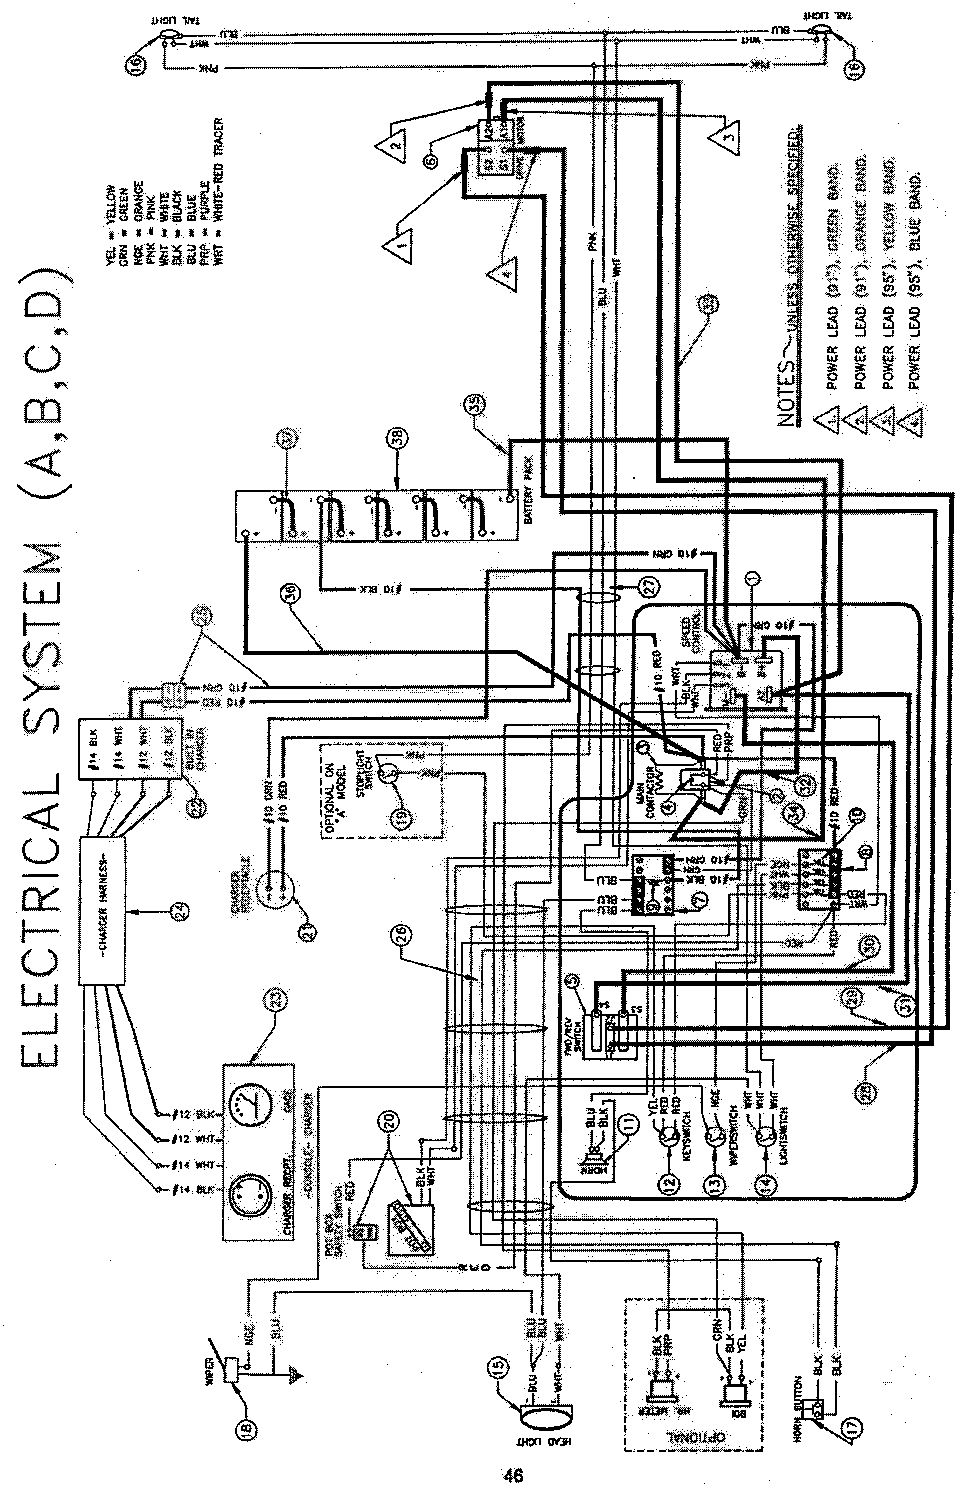 Nordskog280_92plus vintagegolfcartparts com westinghouse golf cart wiring diagram at fashall.co